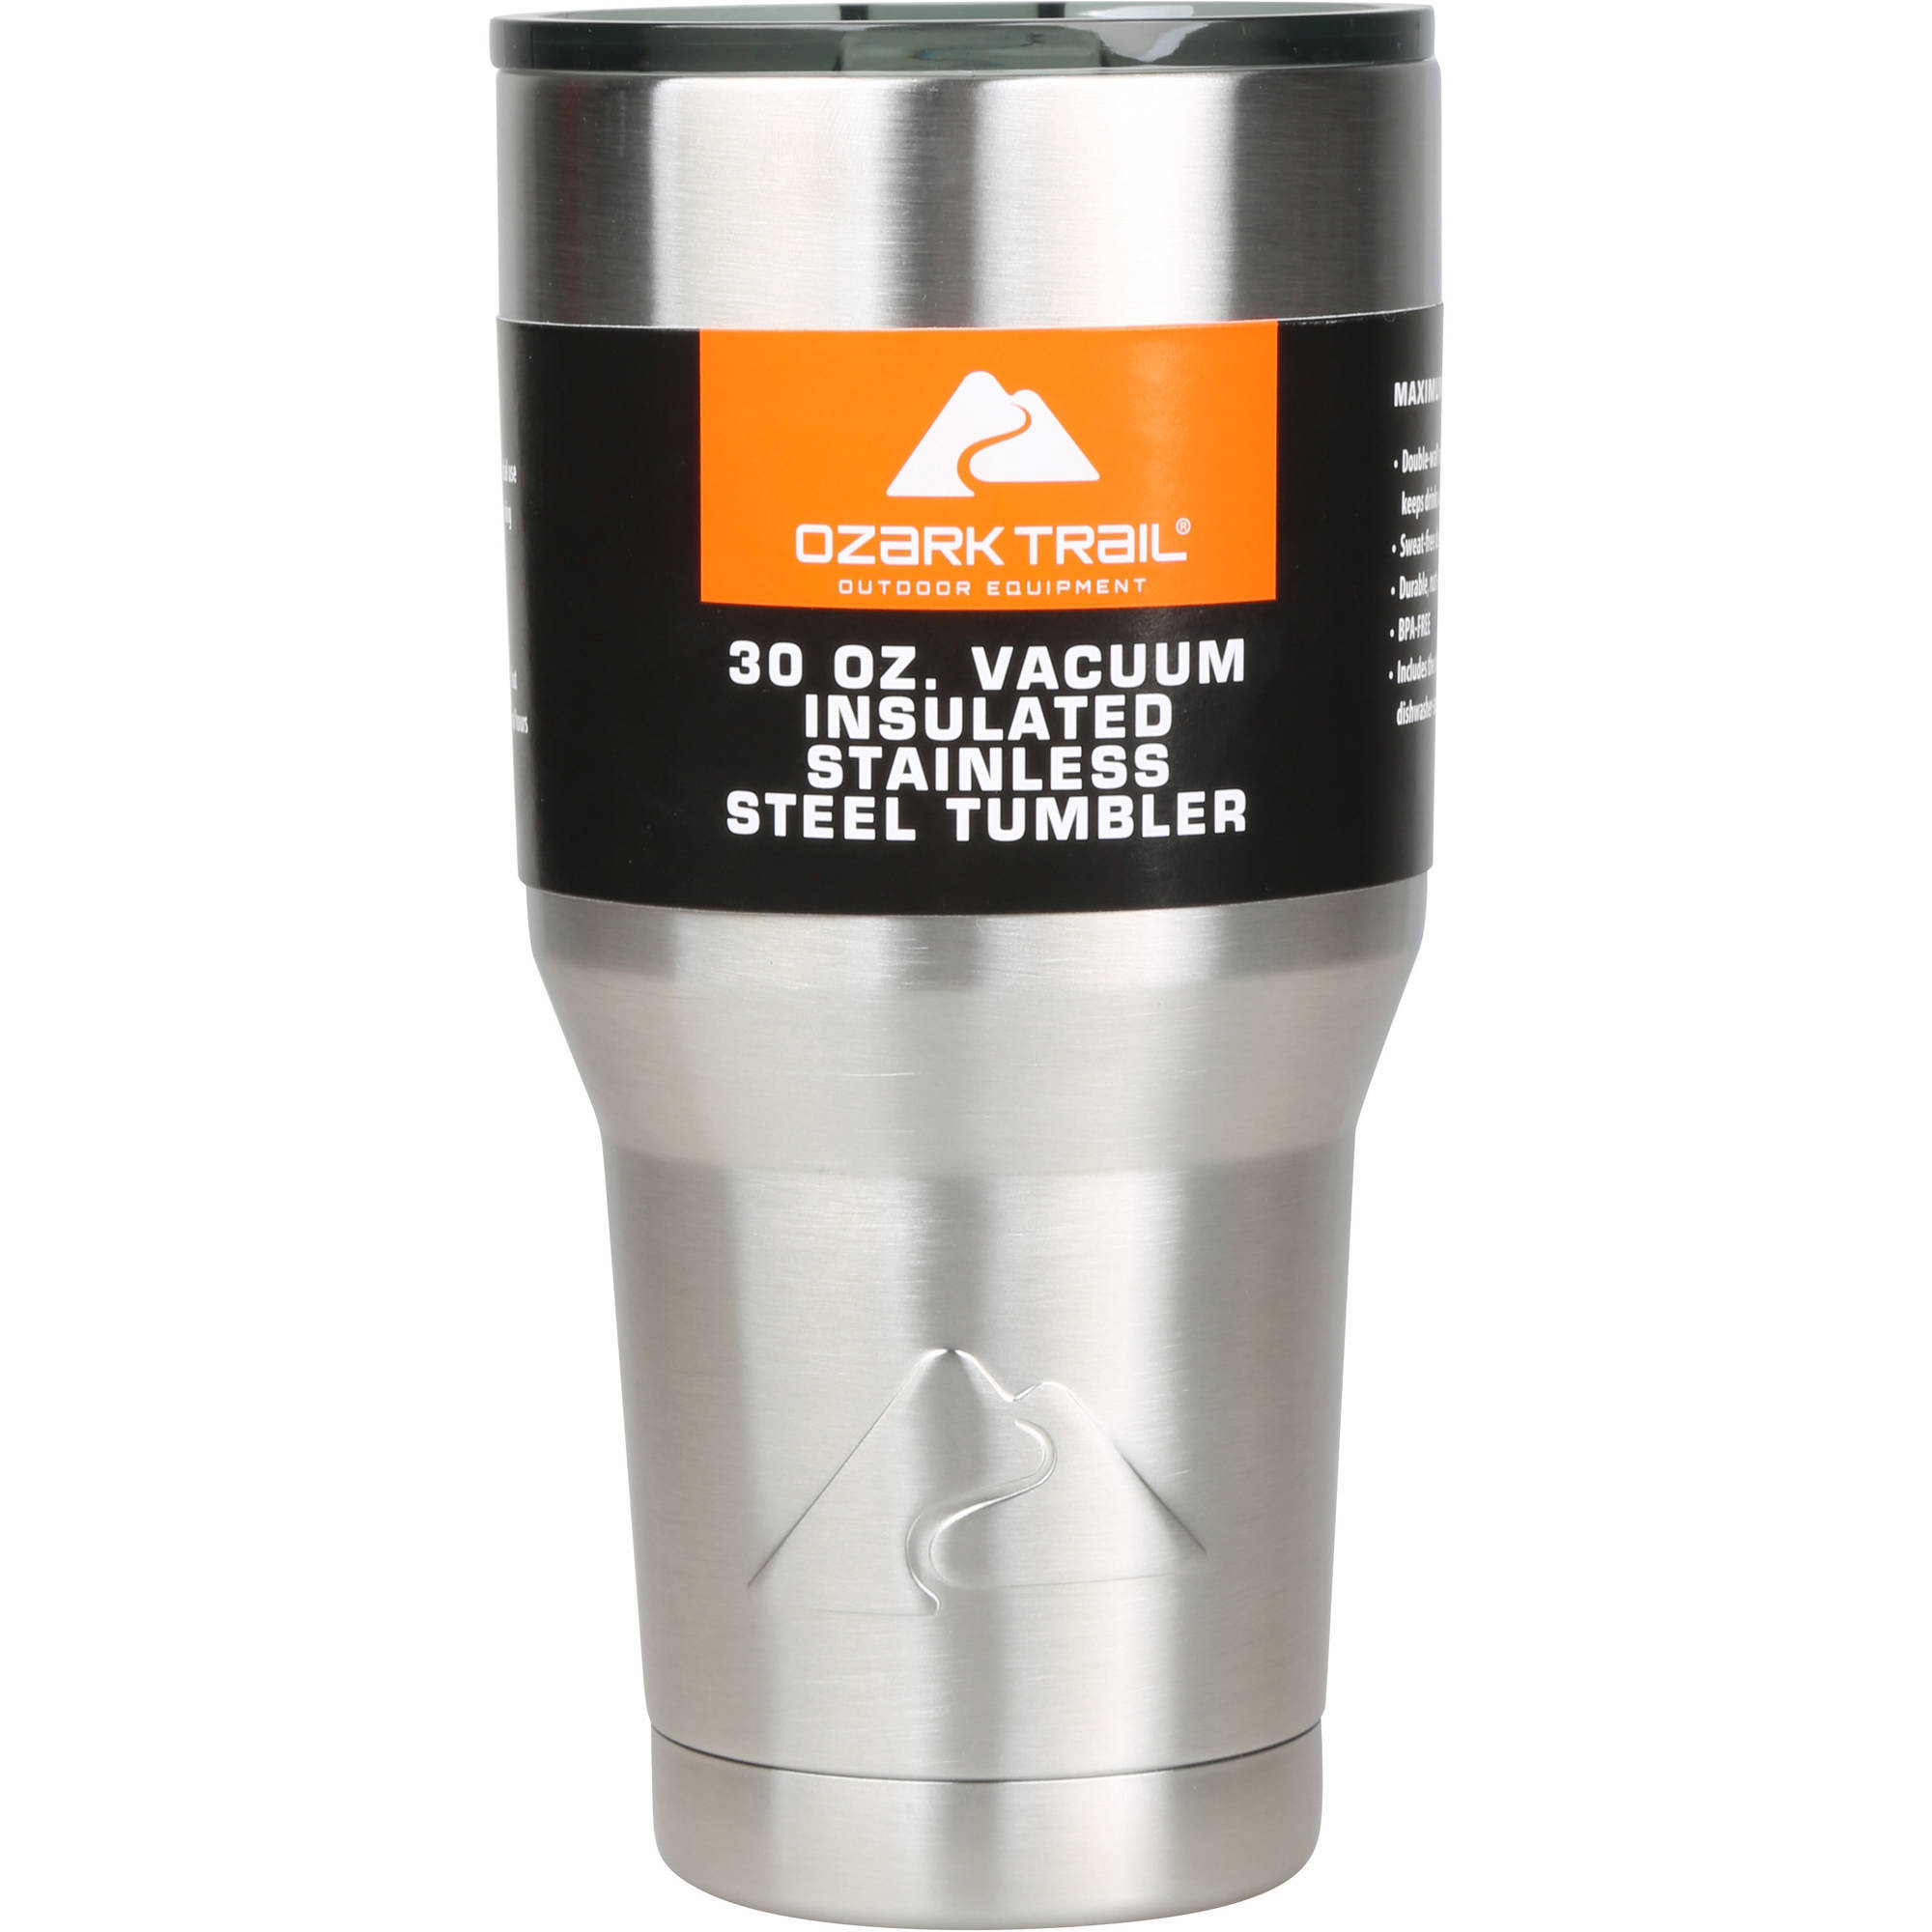 Ozark Trail 30-Ounce Double-Wall, Vacuum-Sealed Tumbler Image 1 of 4